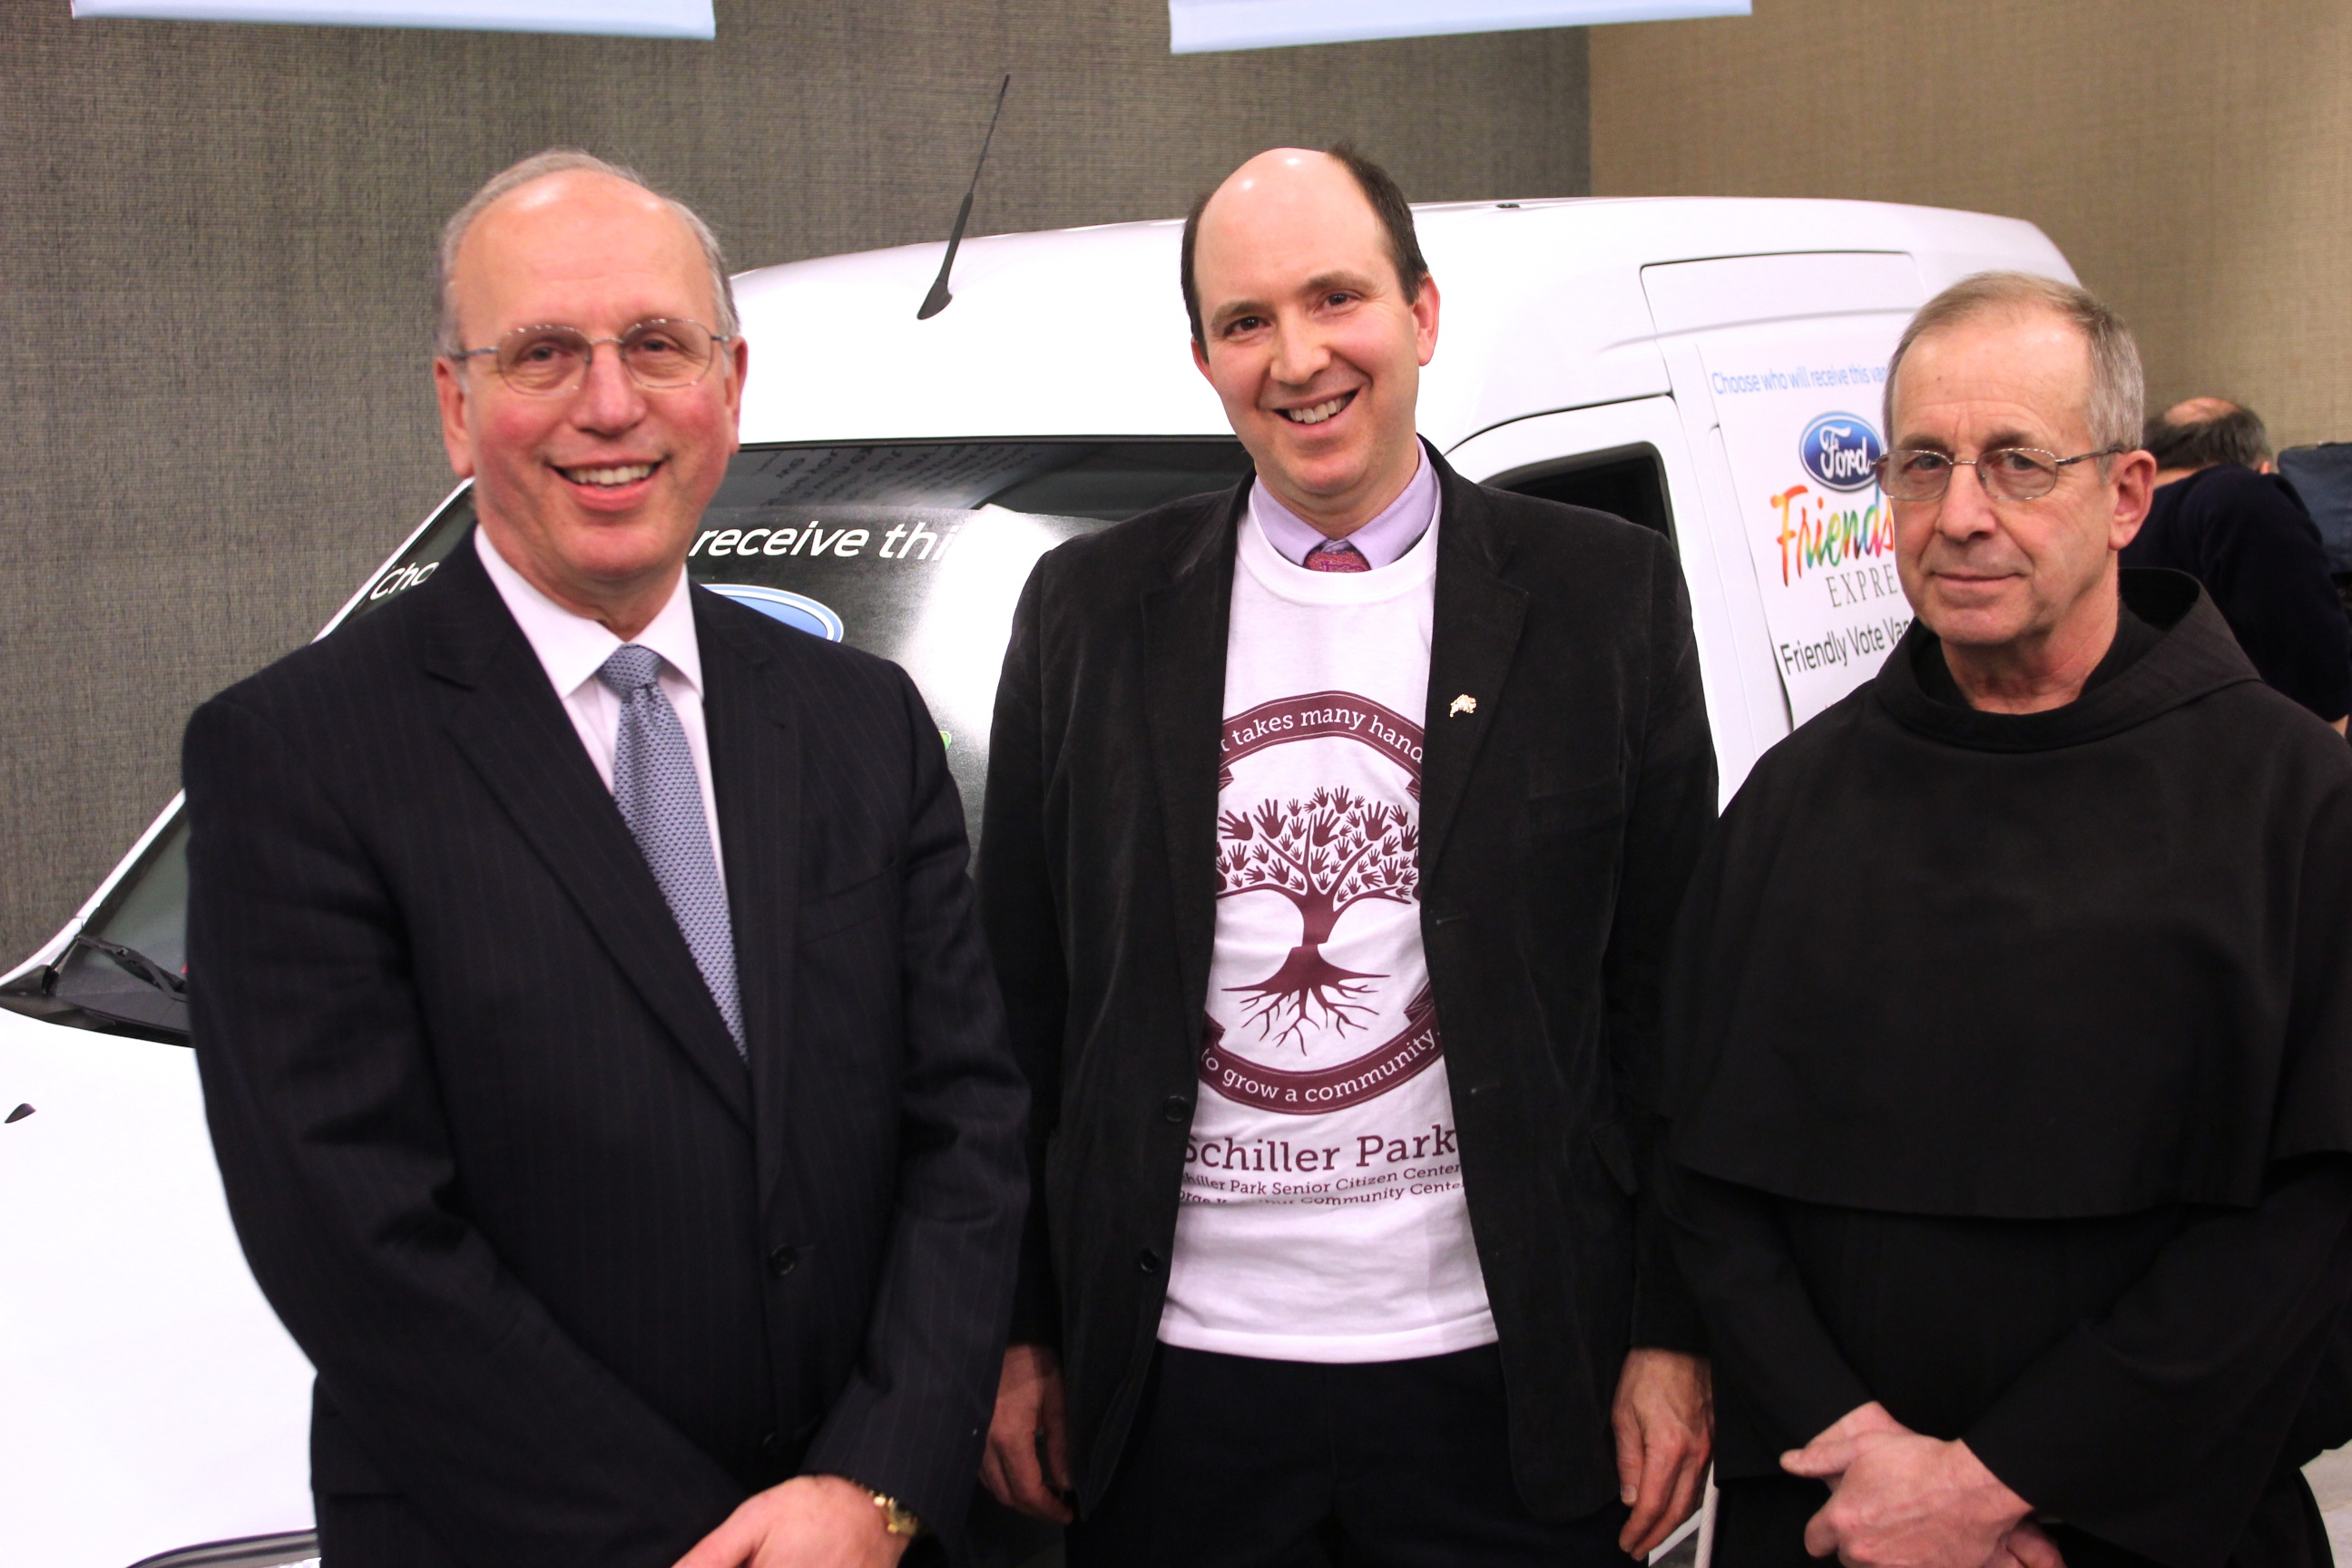 Scott Bieler, chairman of Ford Friendship Express Selection Committee, congratulates Ford Friendship Express van recipients: Michael Tritto, Schiller Park Community Services, Inc.; and Brother Brian, The Franciscan Center.